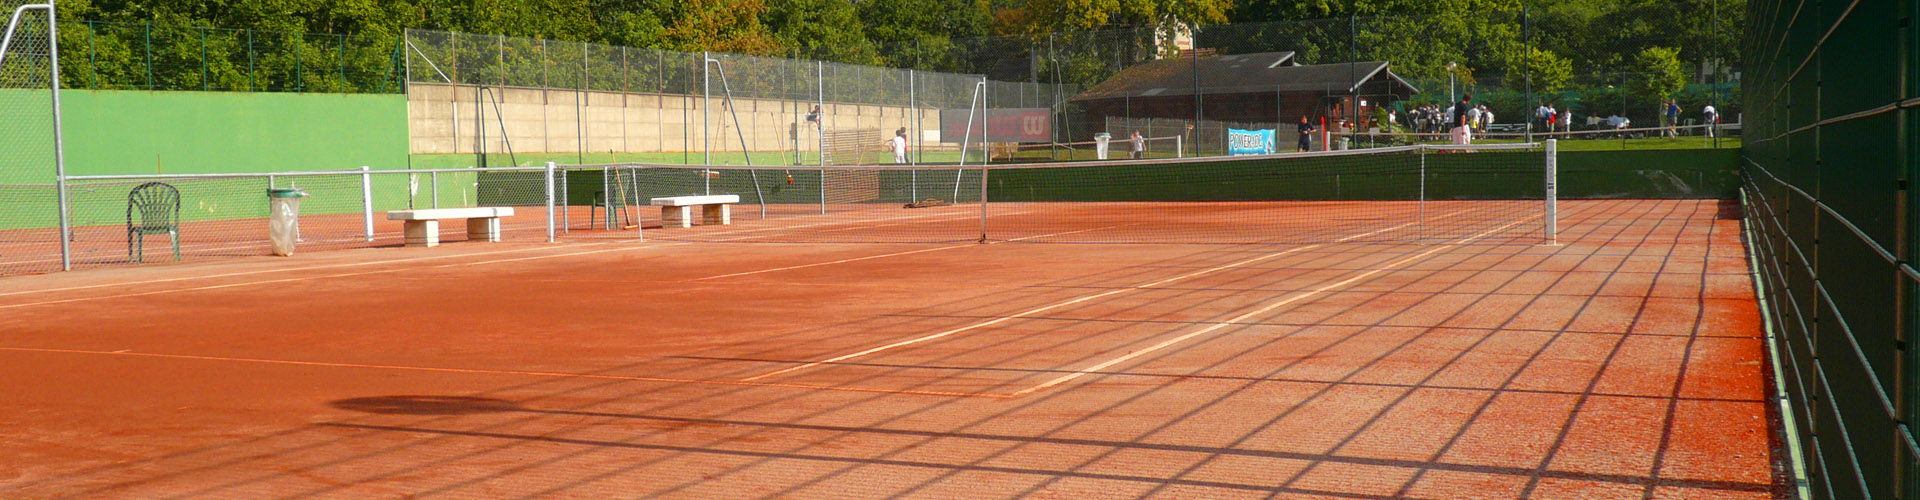 Tennis en Masterclay